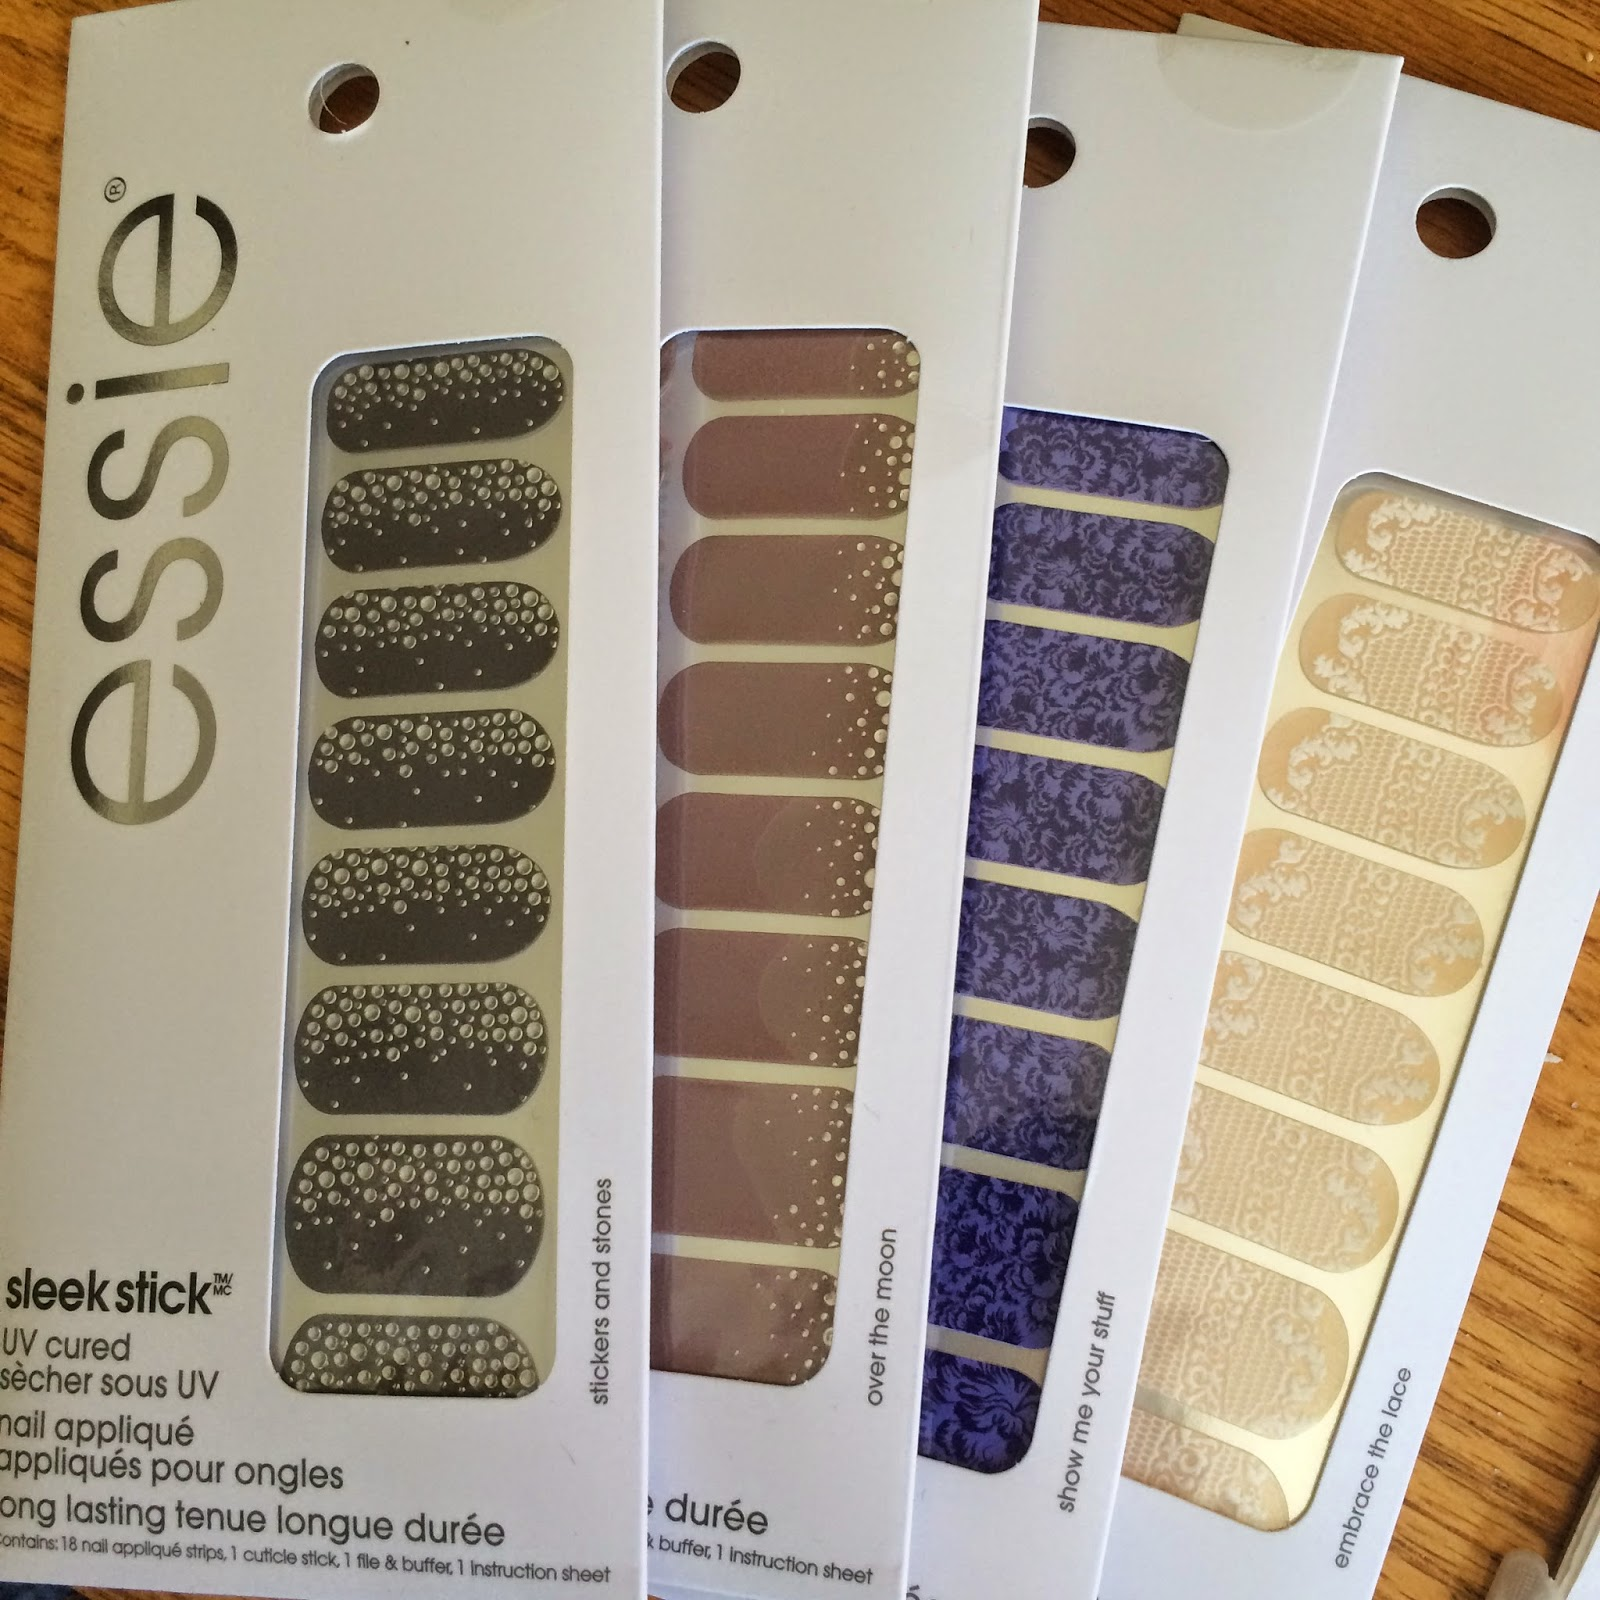 Essie Nail Appliques: Review And Swatch: Essie Sleek Stick Nail Appliques In